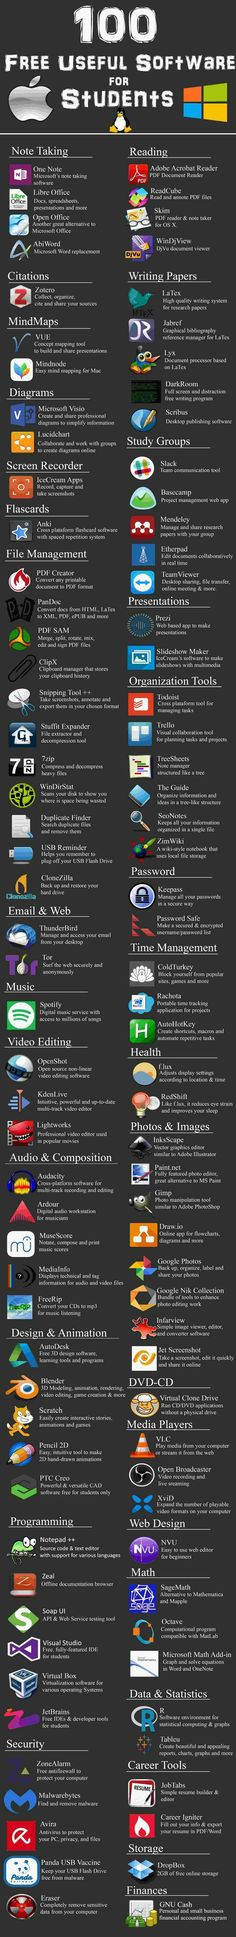 Free & Useful Software for Students